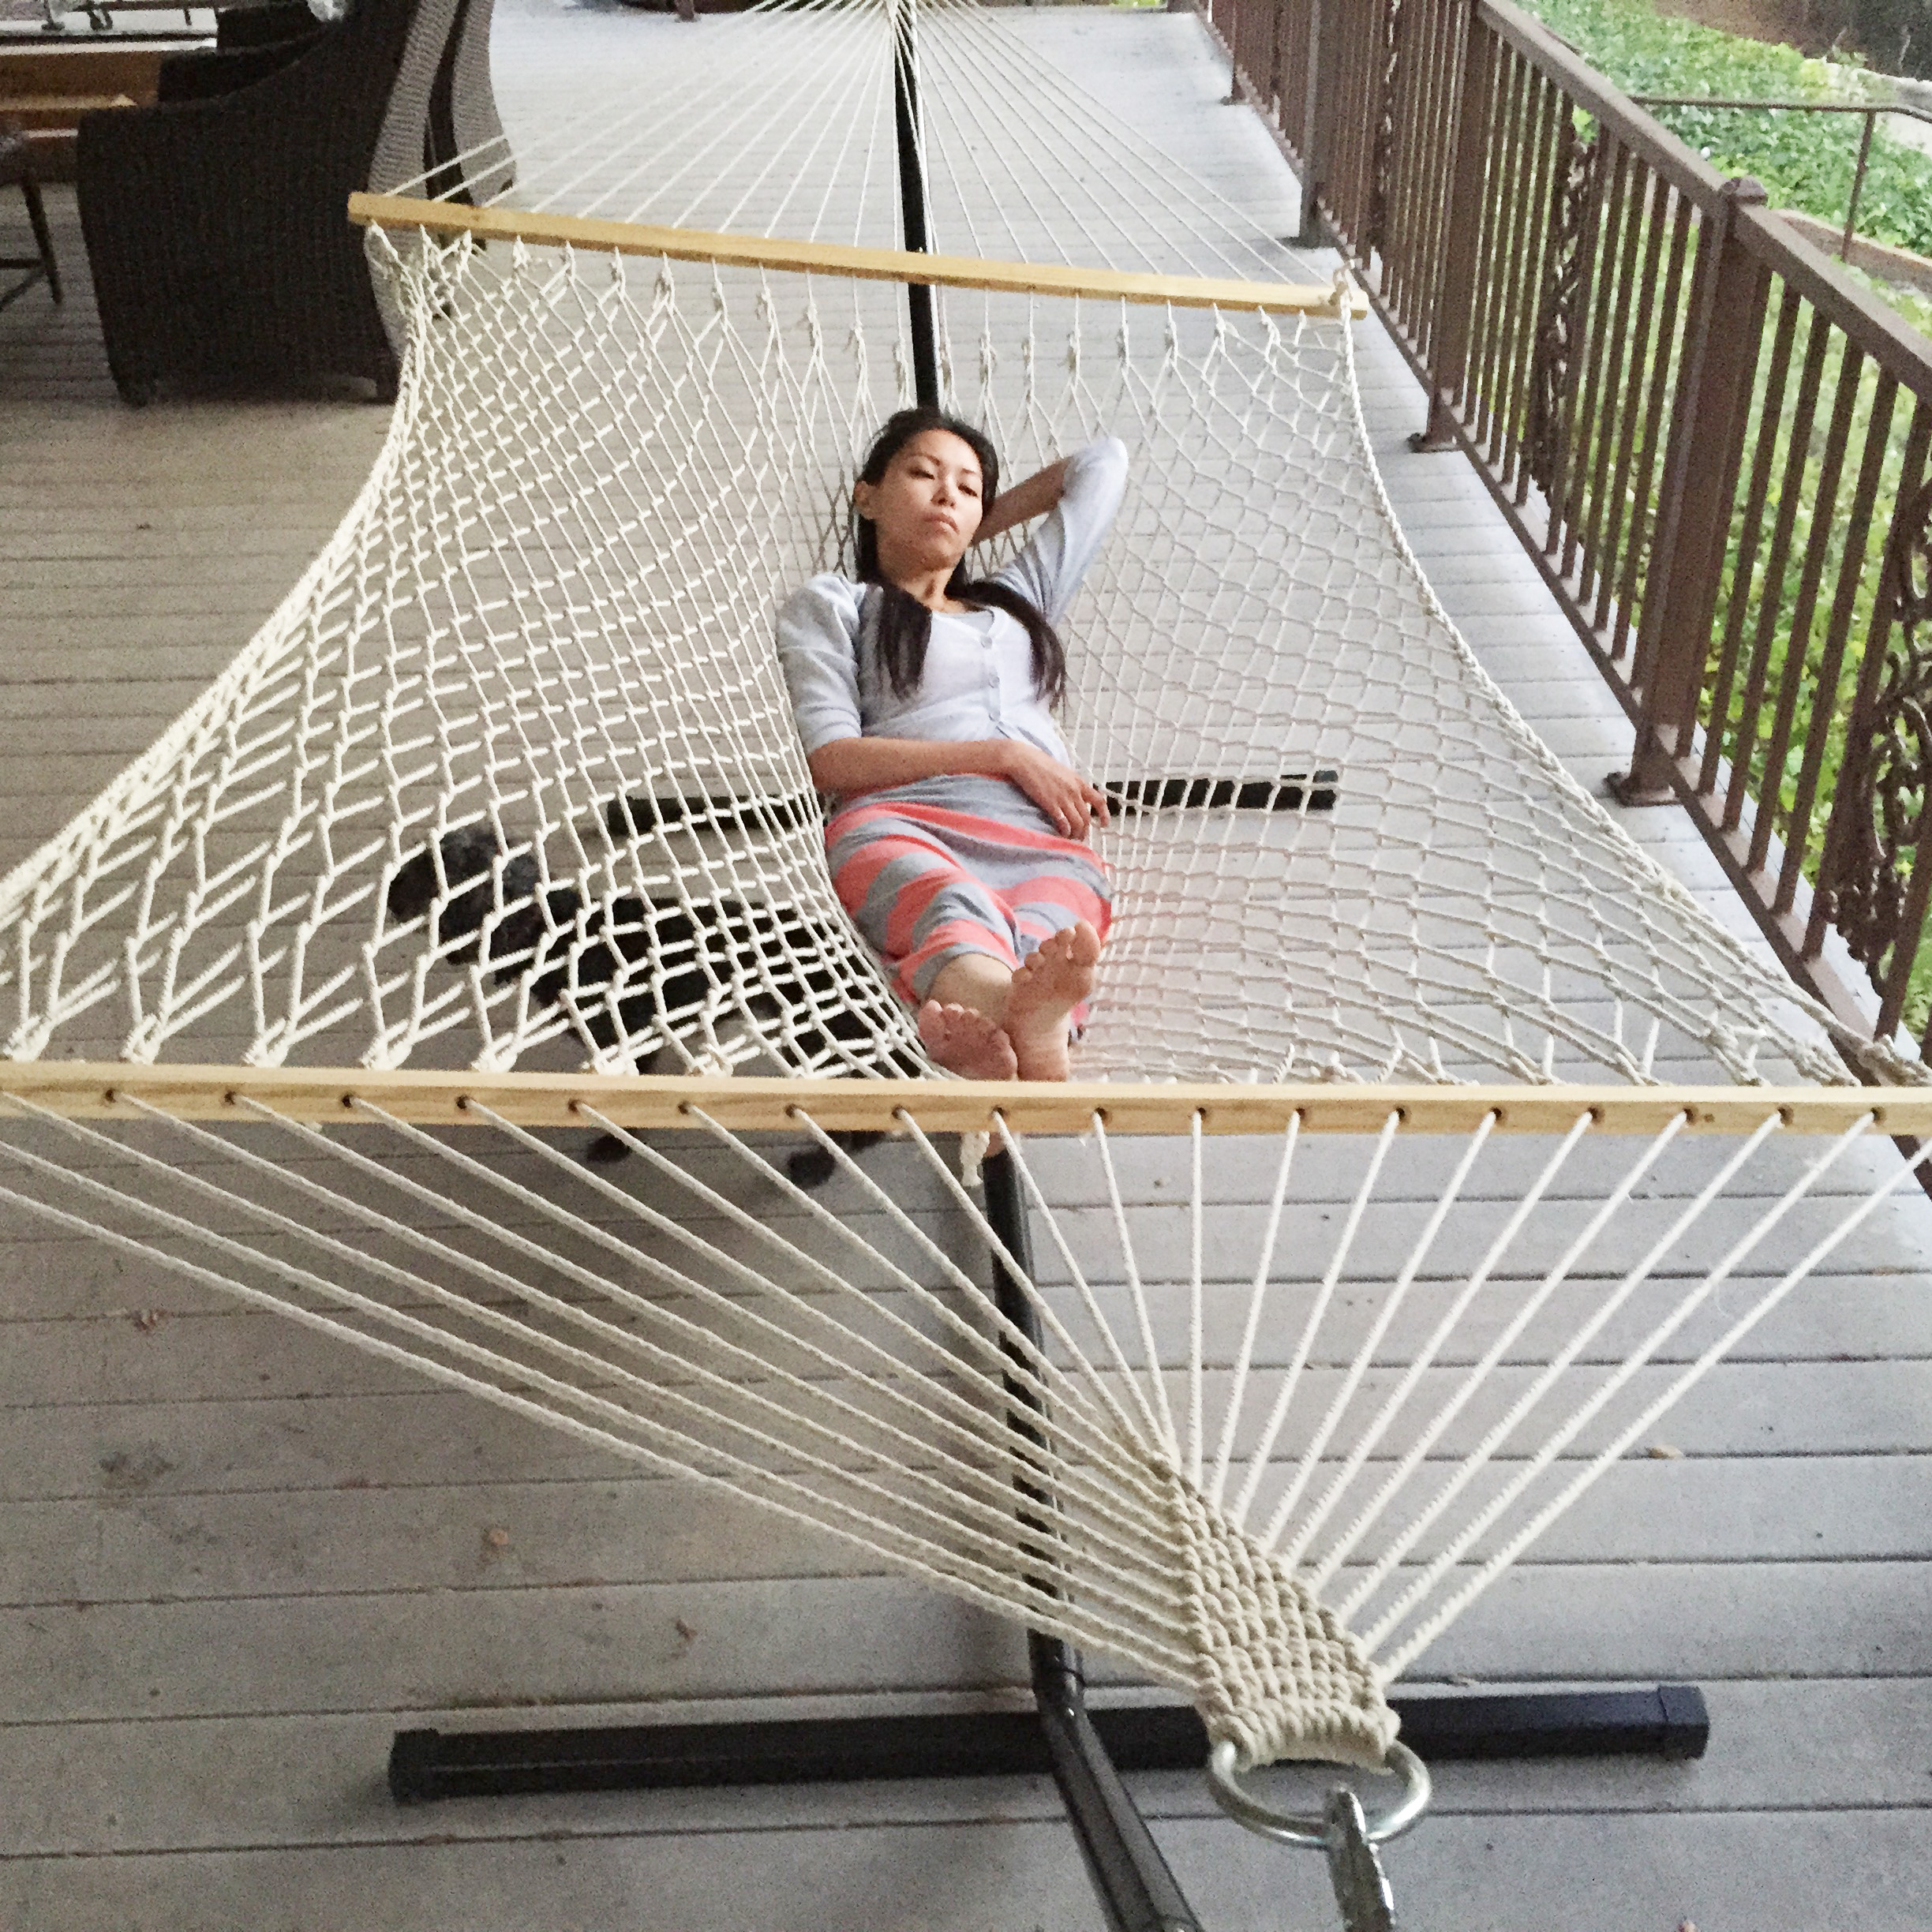 hammock chair stand kijiji oversized tufted outdoor swing cotton double bed rope 43 metal